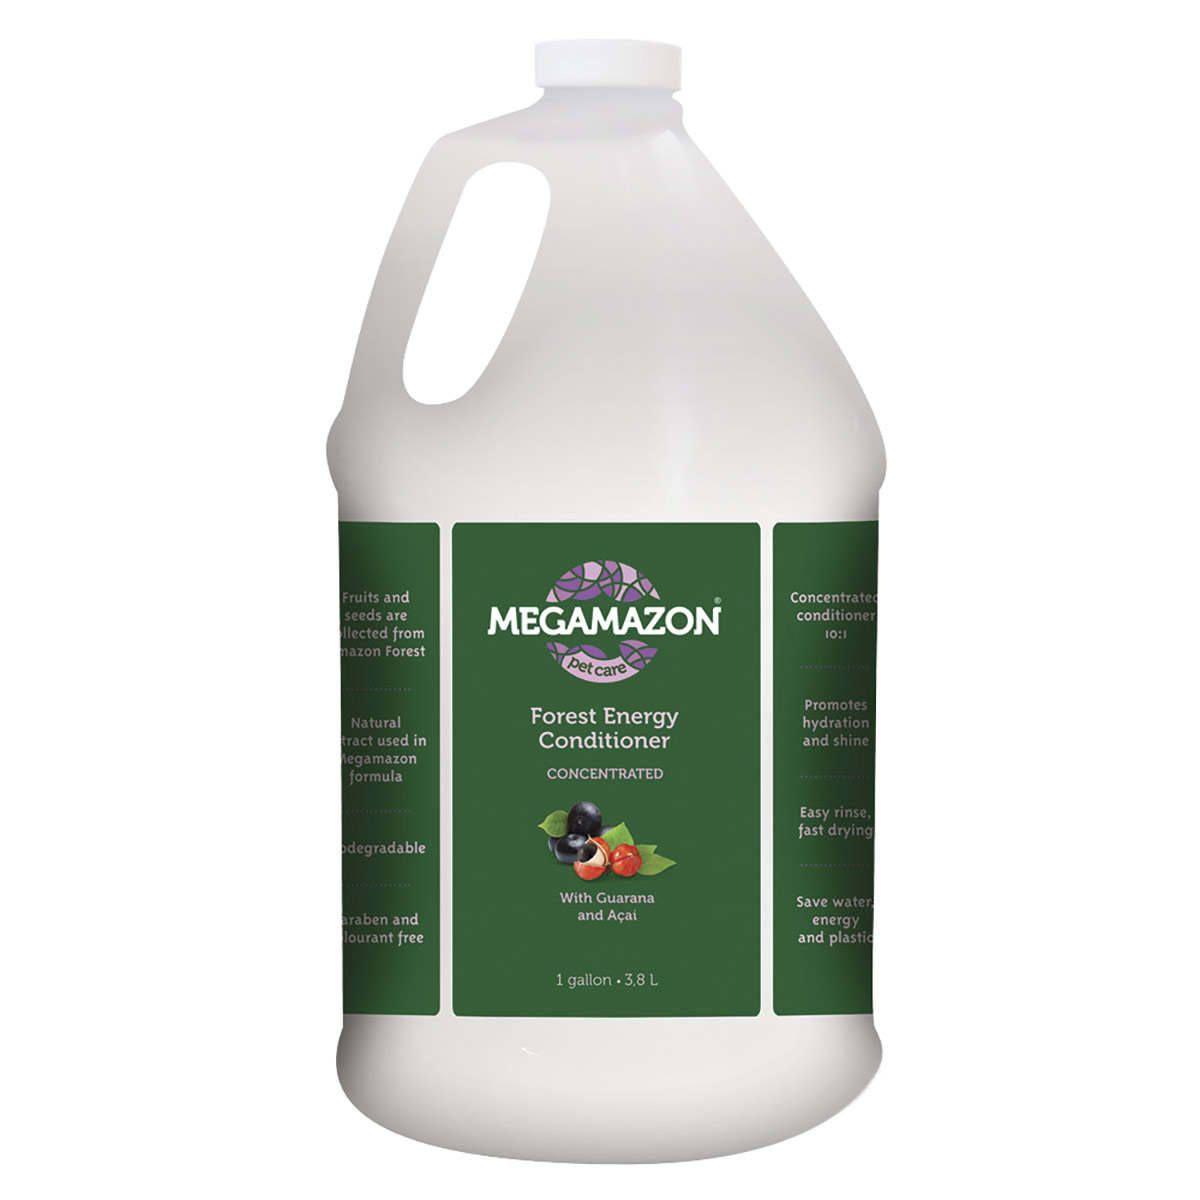 Buy Megamazon Forest Energy Conditioner for Dogs Gallon 10:1 Concentration